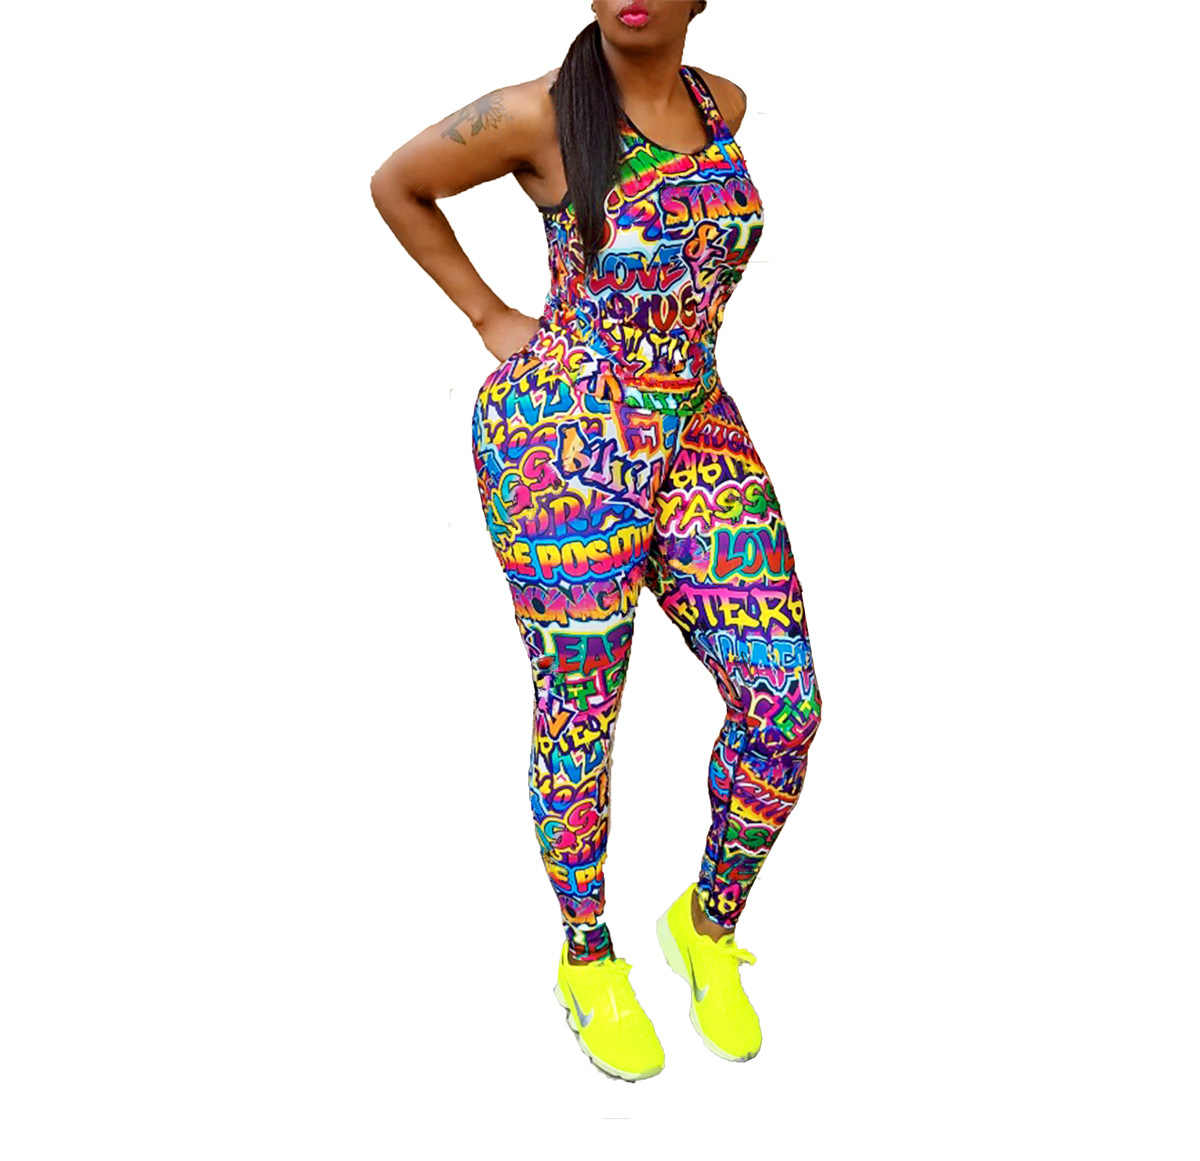 2019 women summer letter rainbow printed tank top skinny pencil long pants suit two piece set sports tracksuit outfit AL029